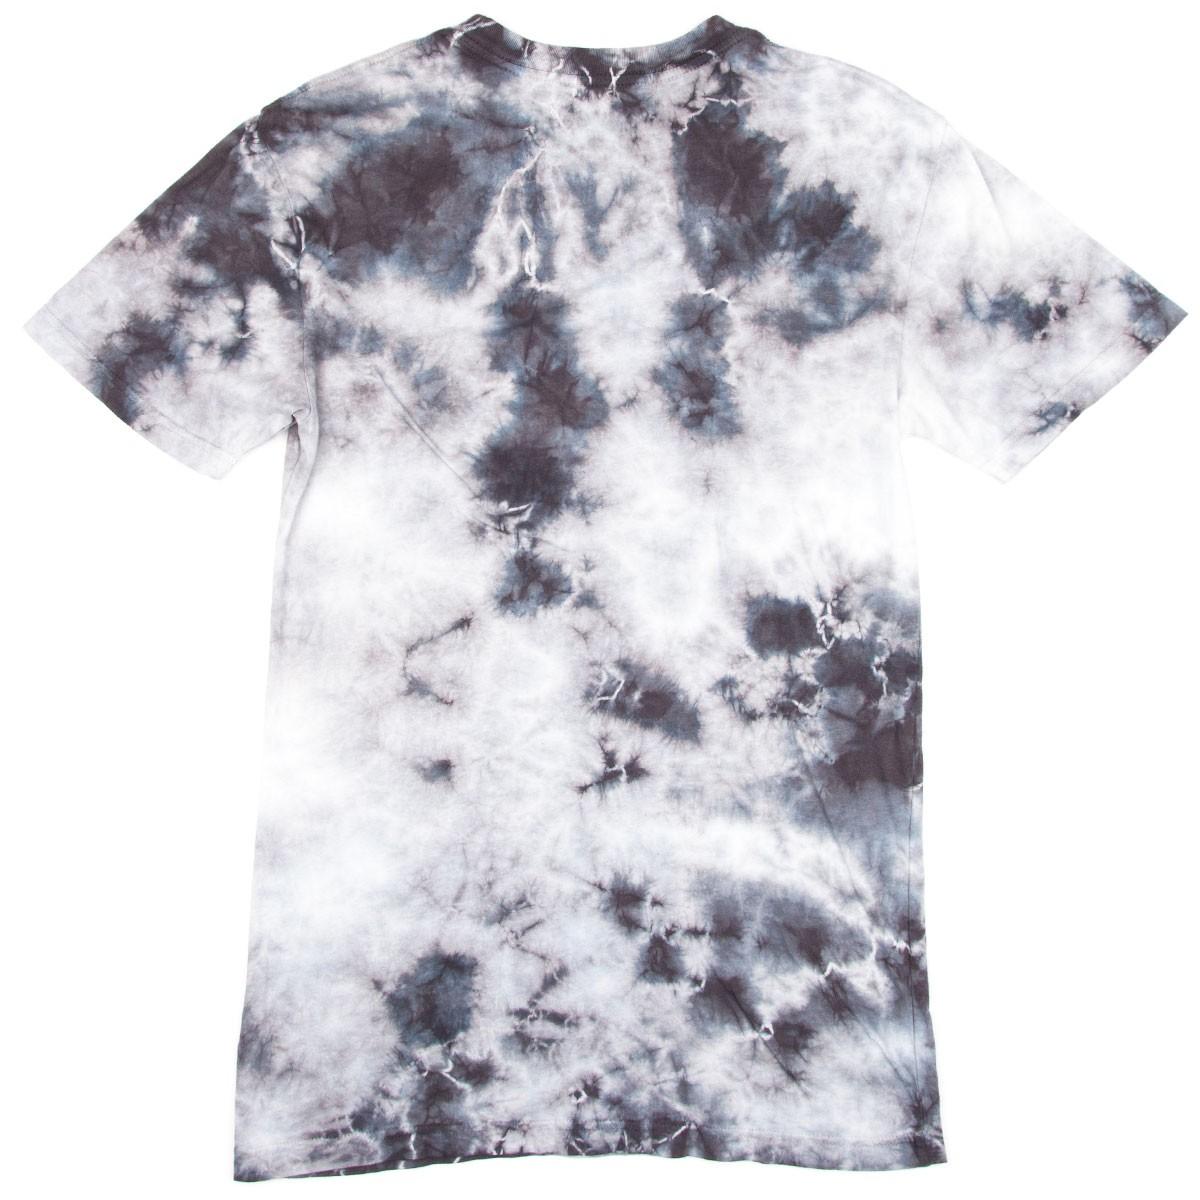 Altamont High Dosage Solo Tie Dye T Shirt Black